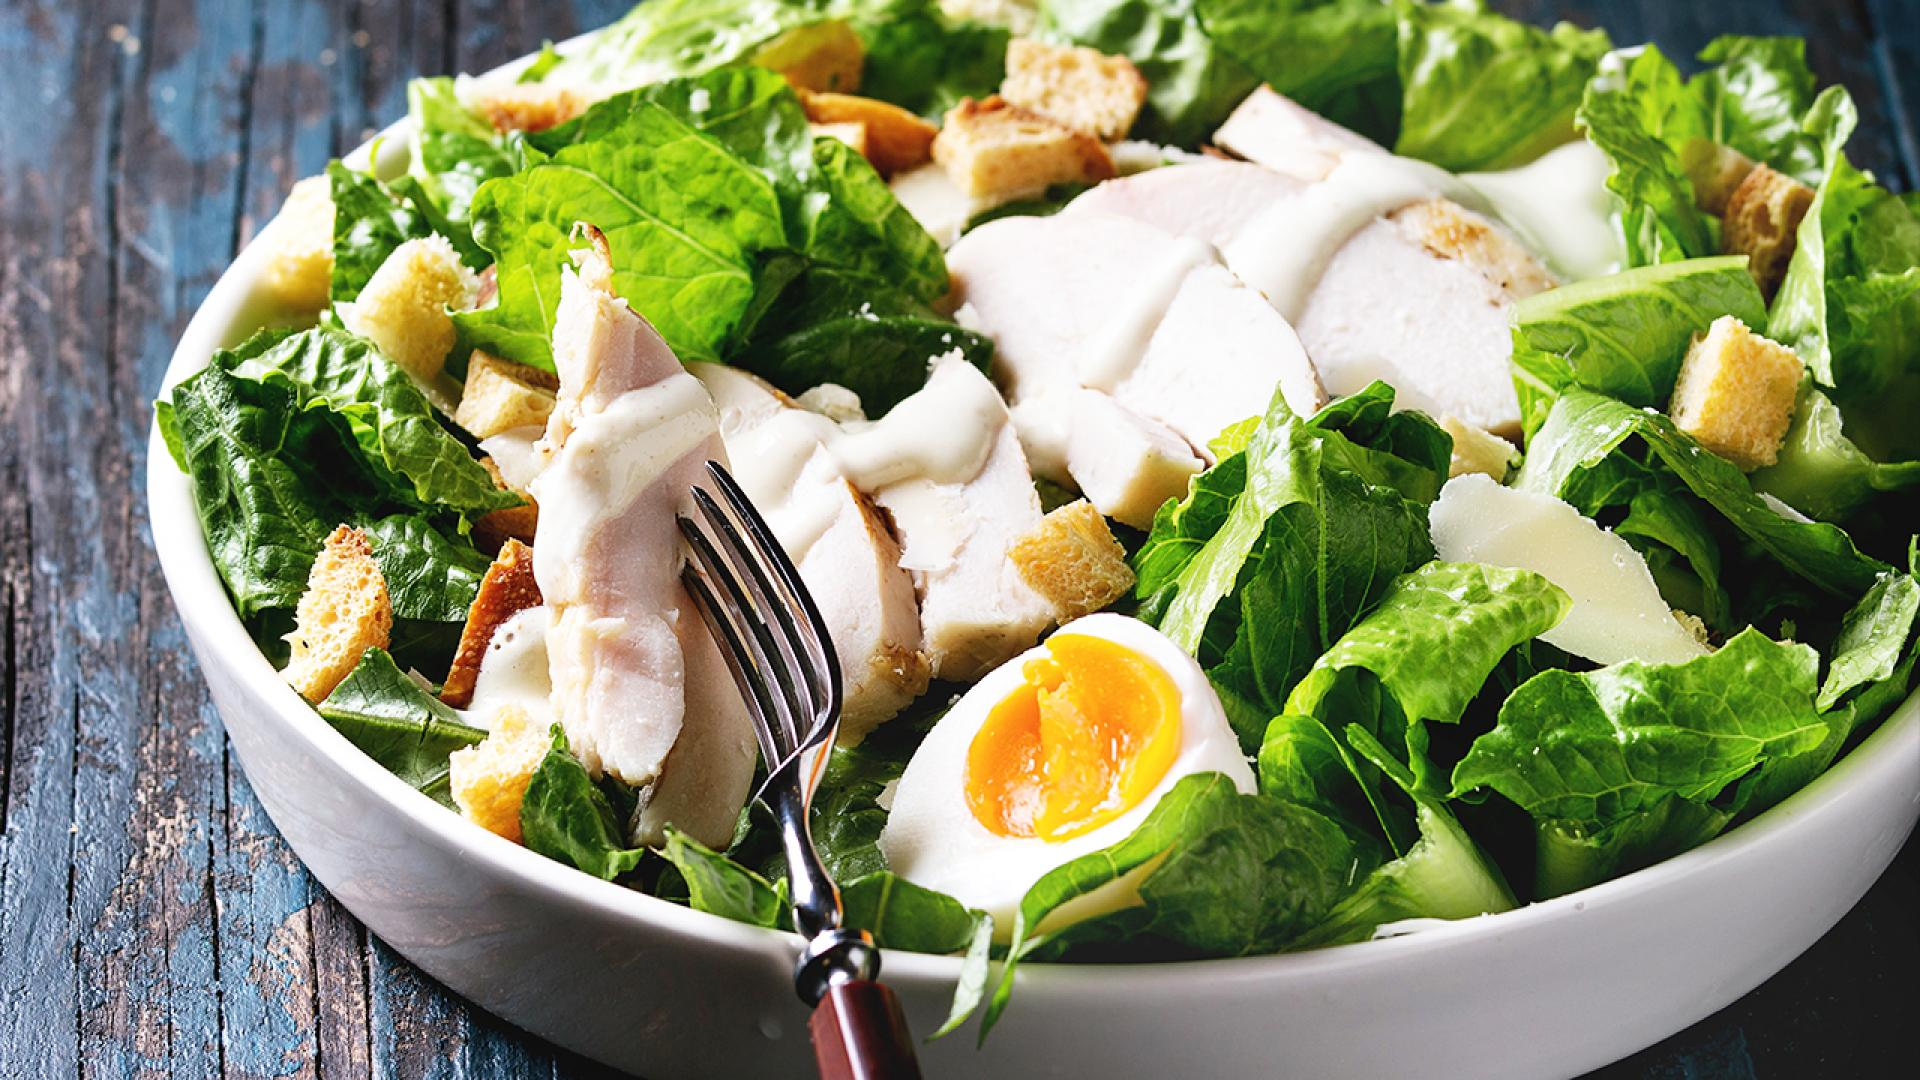 A 12-year-old in Halifax, Nova Scotia dialed 911 to say he didn't like the taste of his salad.